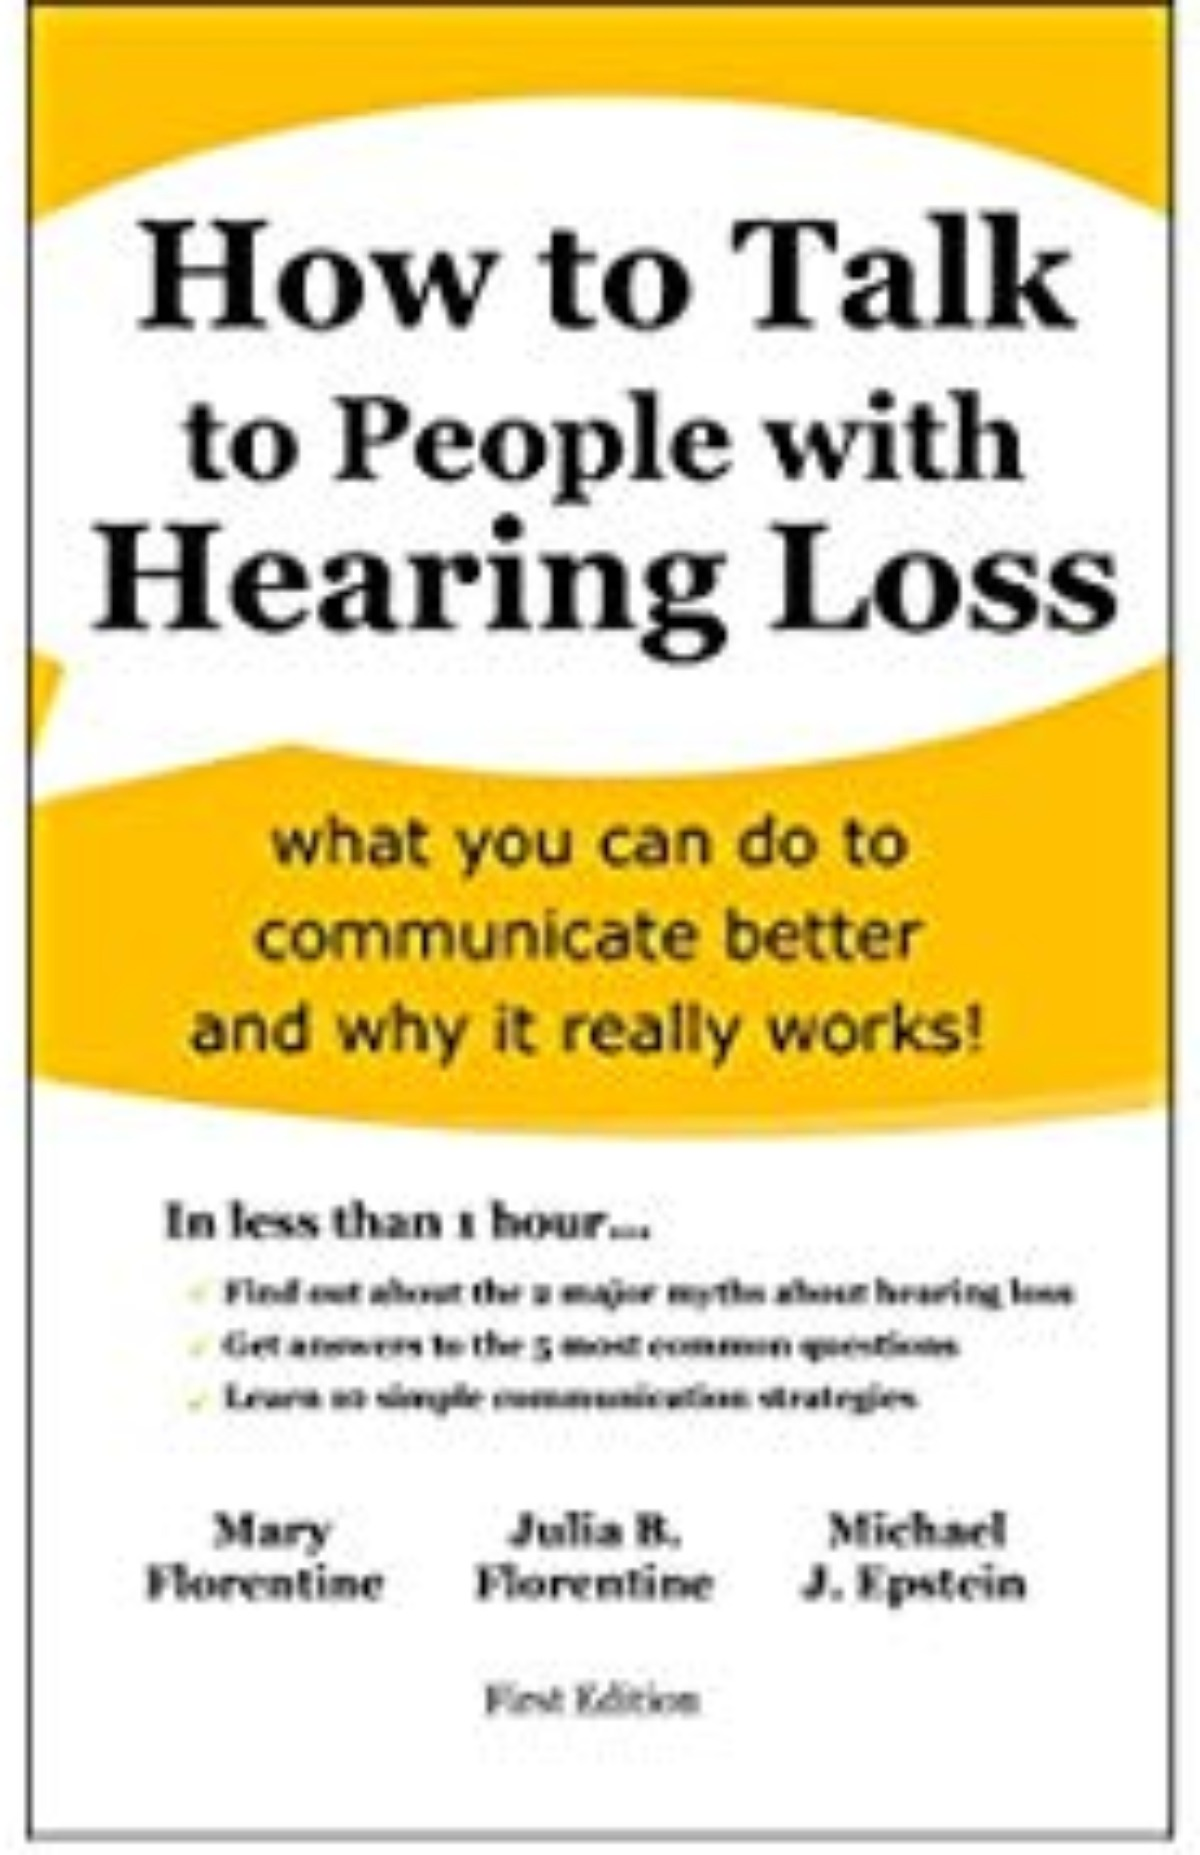 How to Talk to People with Hearing Loss